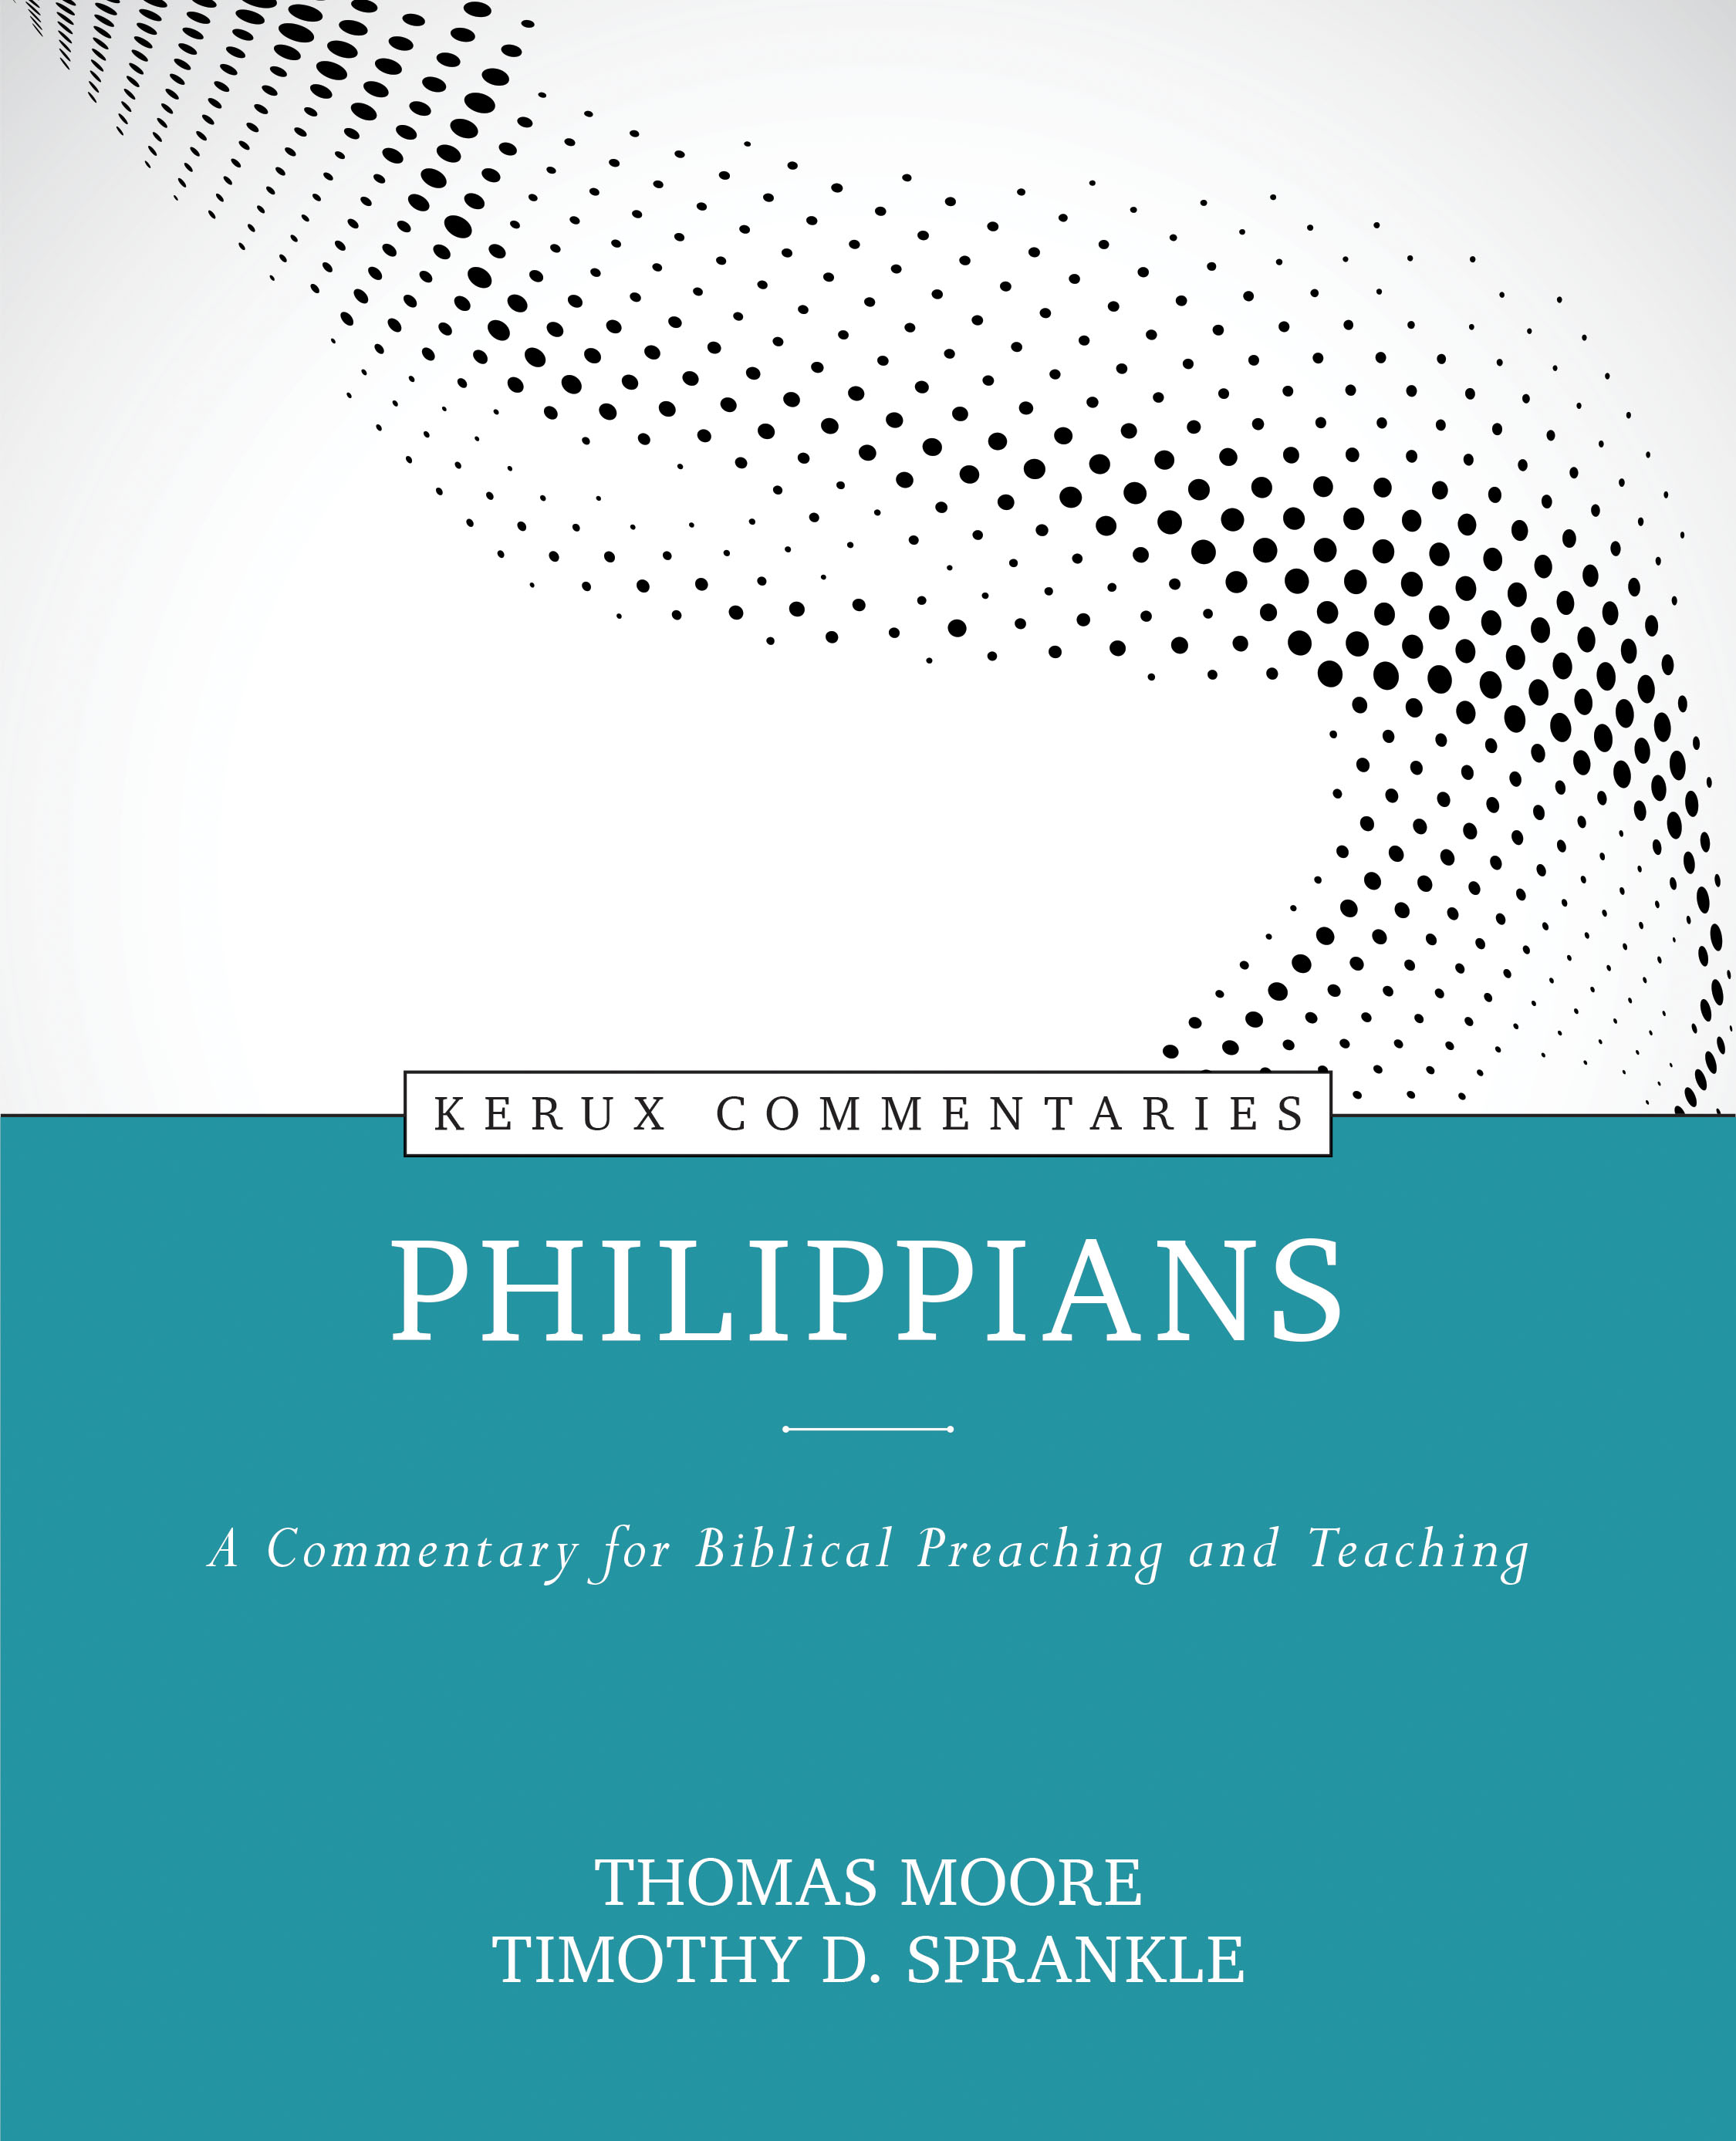 Philippians: A Commentary for Biblical Preaching and Teaching